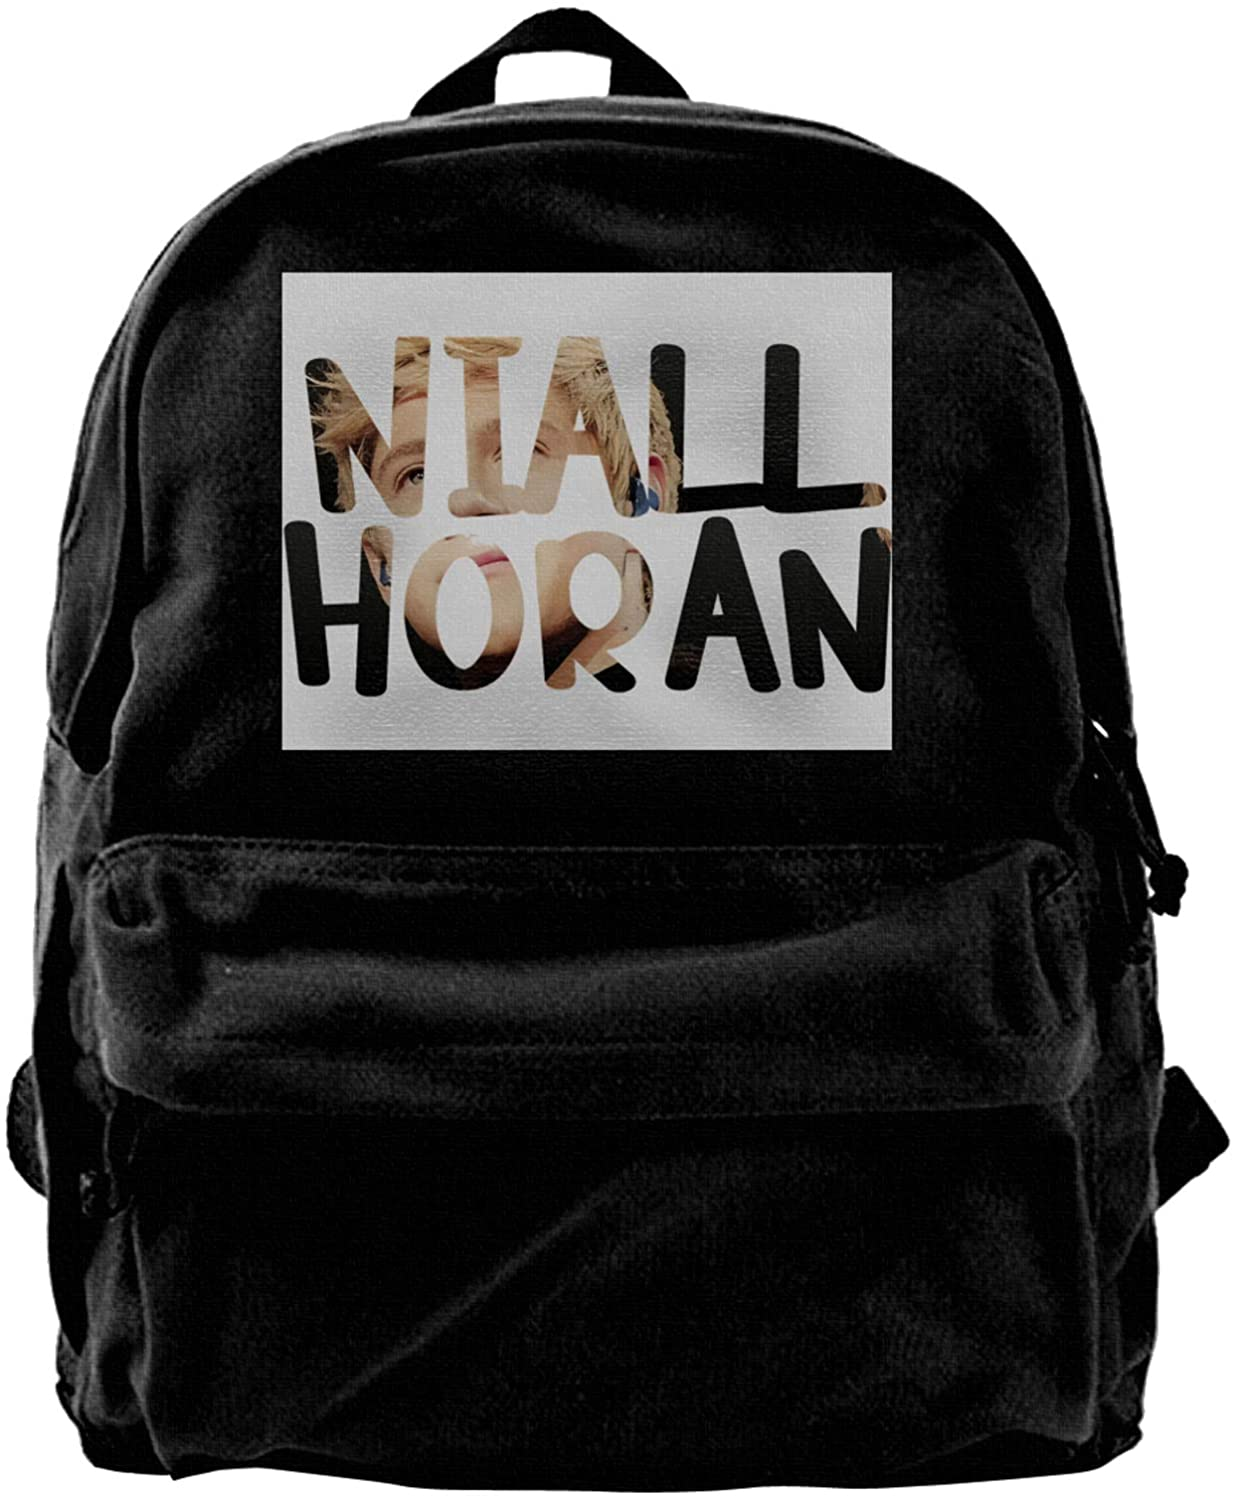 Niall Horan Black Mountaineering Universal Conventional Backpack